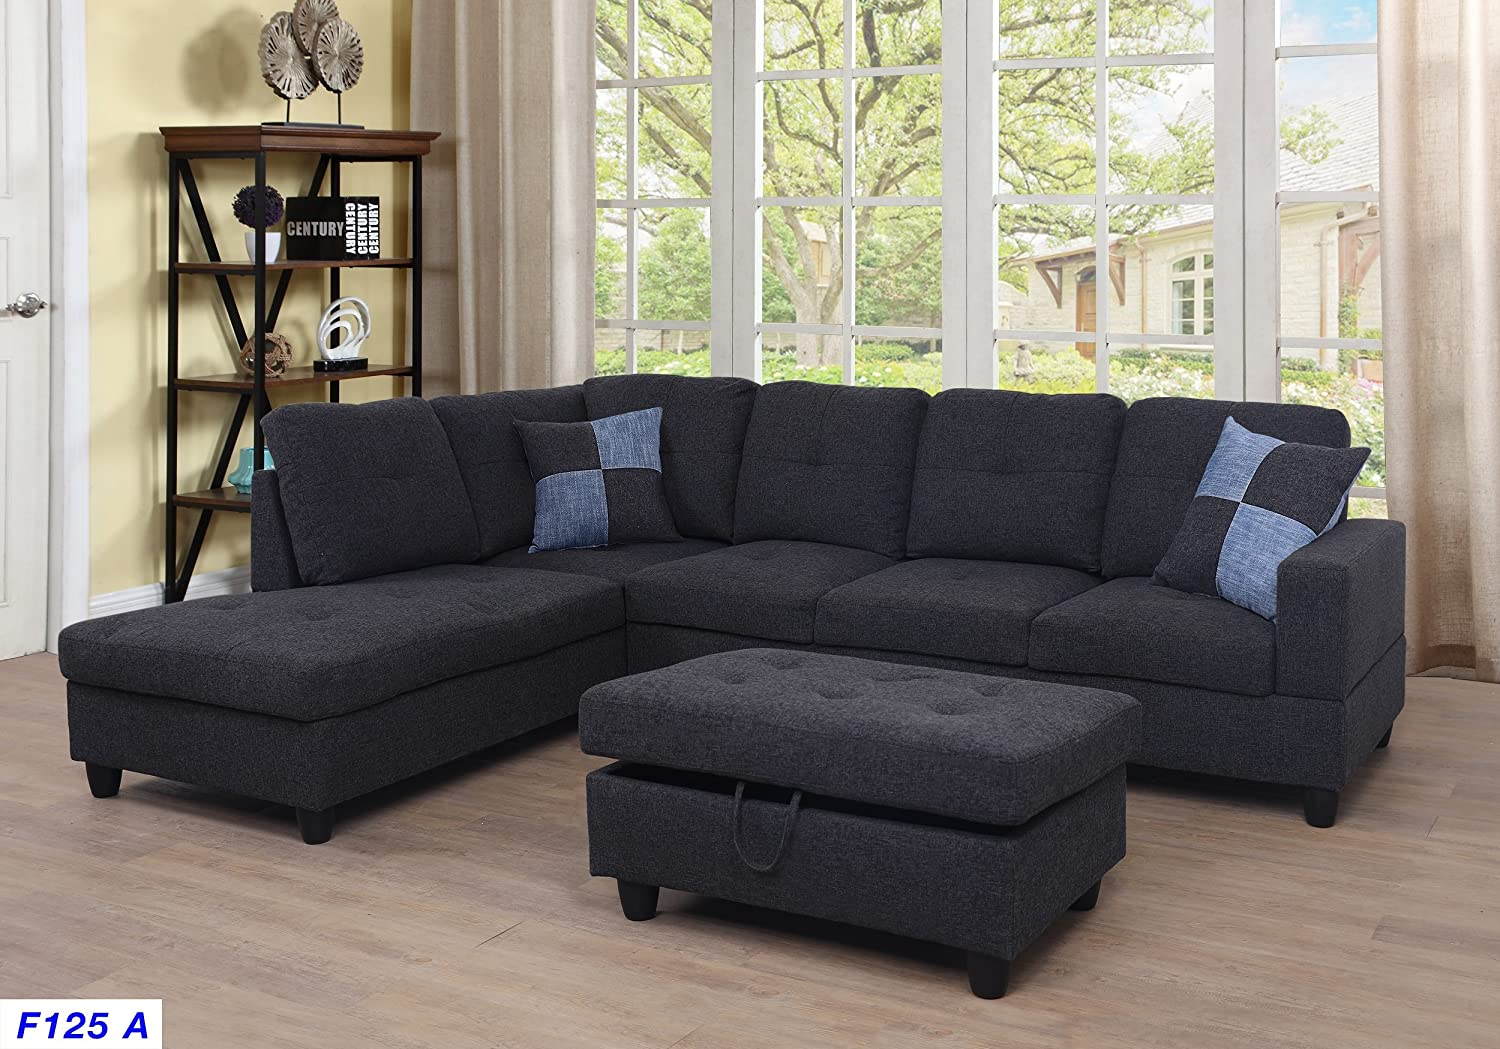 Sensational Amazon Com Beverly Fine Funiture Ct125A Sectional Sofa Set Evergreenethics Interior Chair Design Evergreenethicsorg